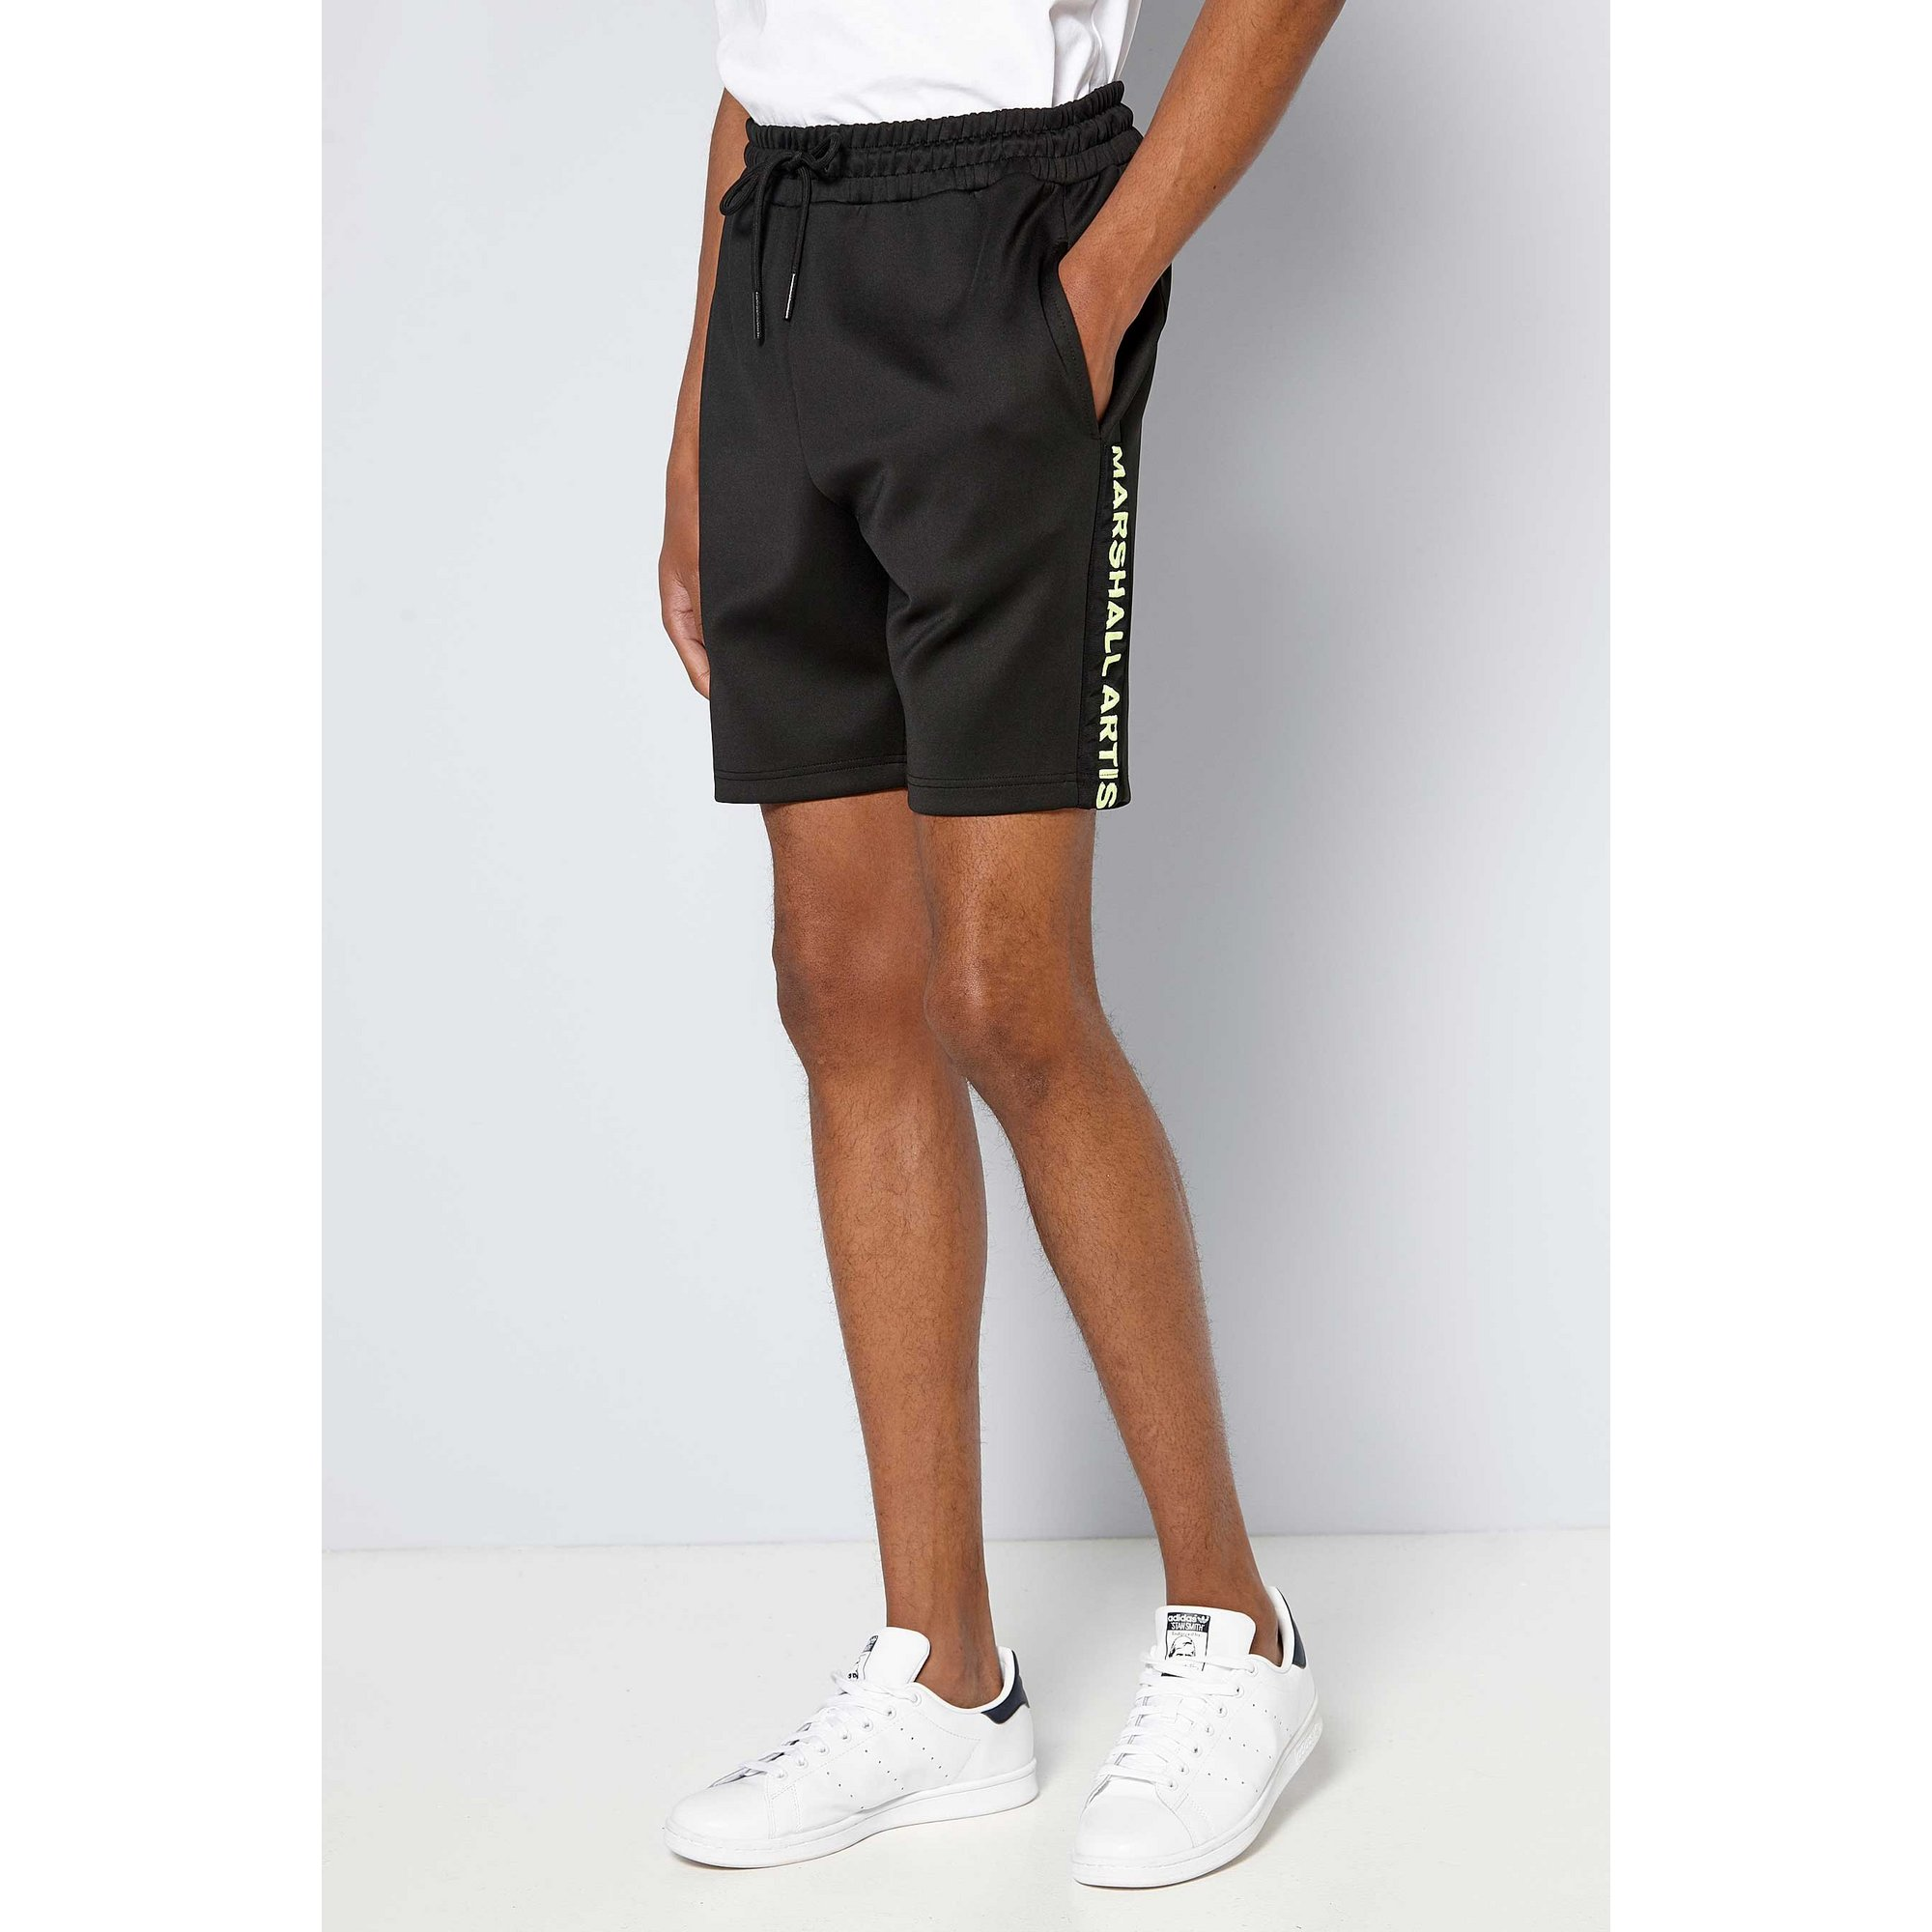 Image of Marshall Artist Black Cadence Shorts